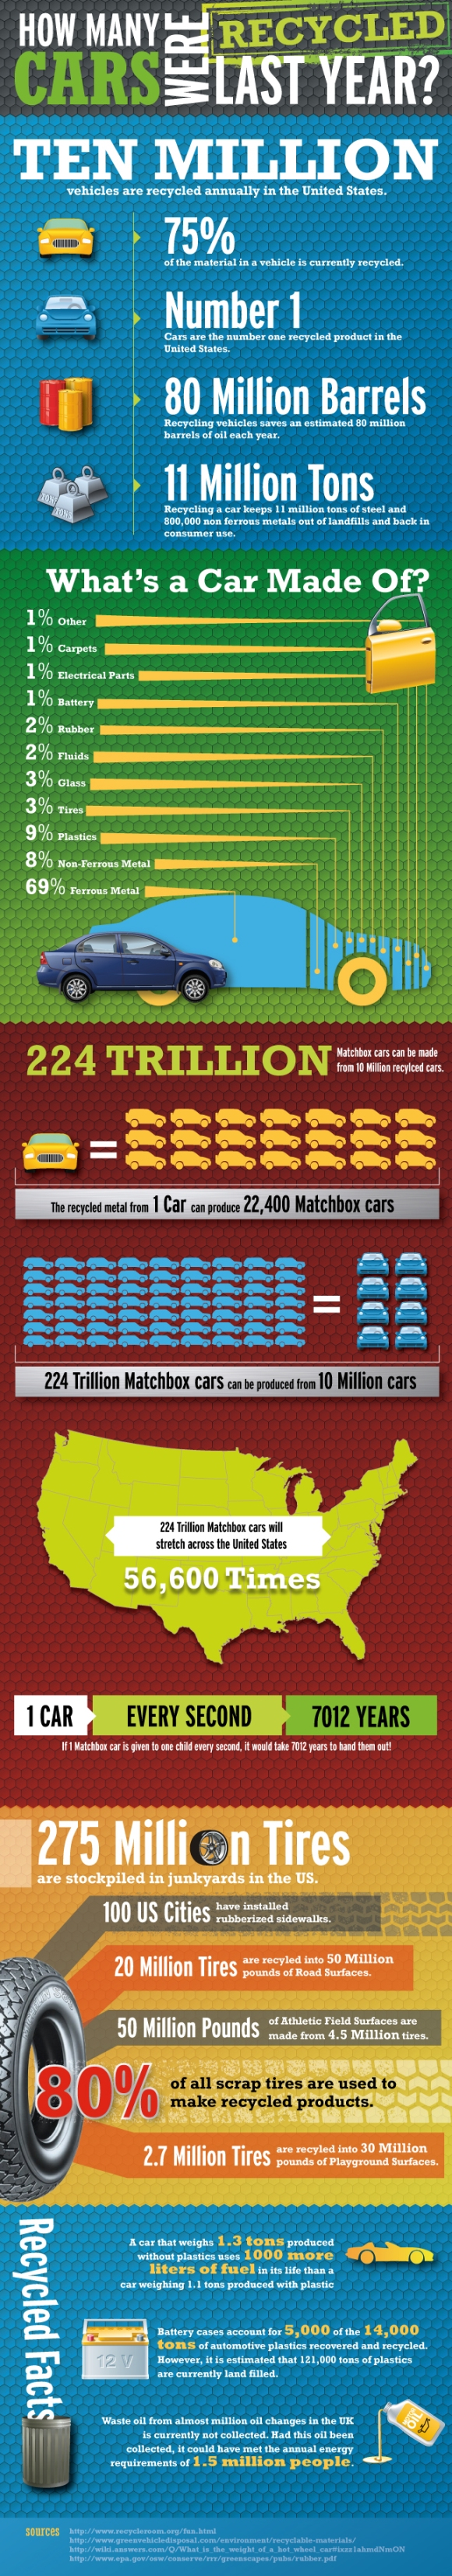 1.How many cars were recycled last year?